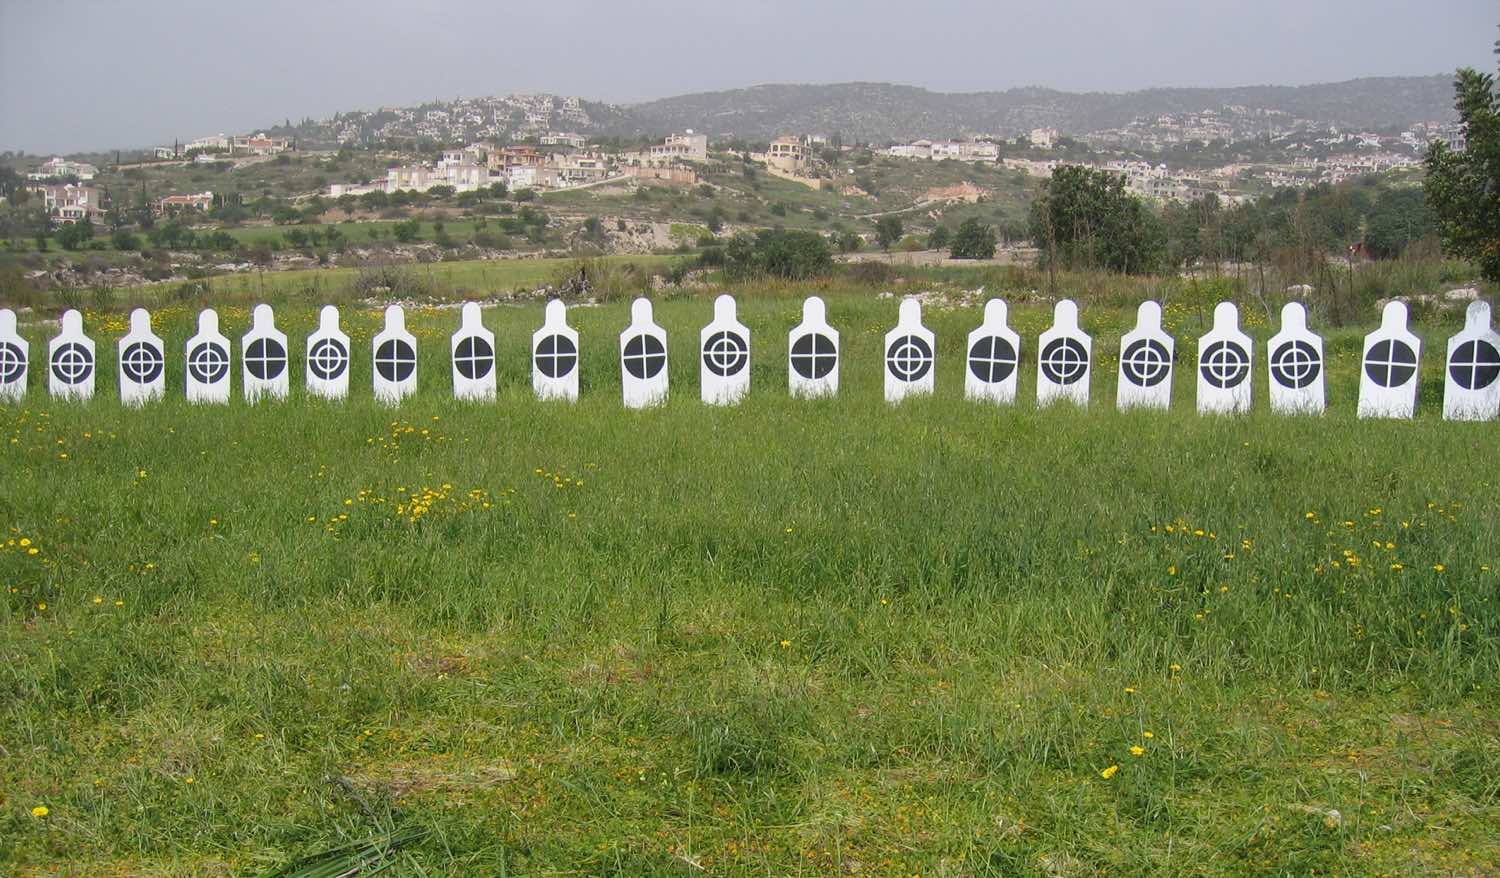 White human figures in line with black targets on their chest